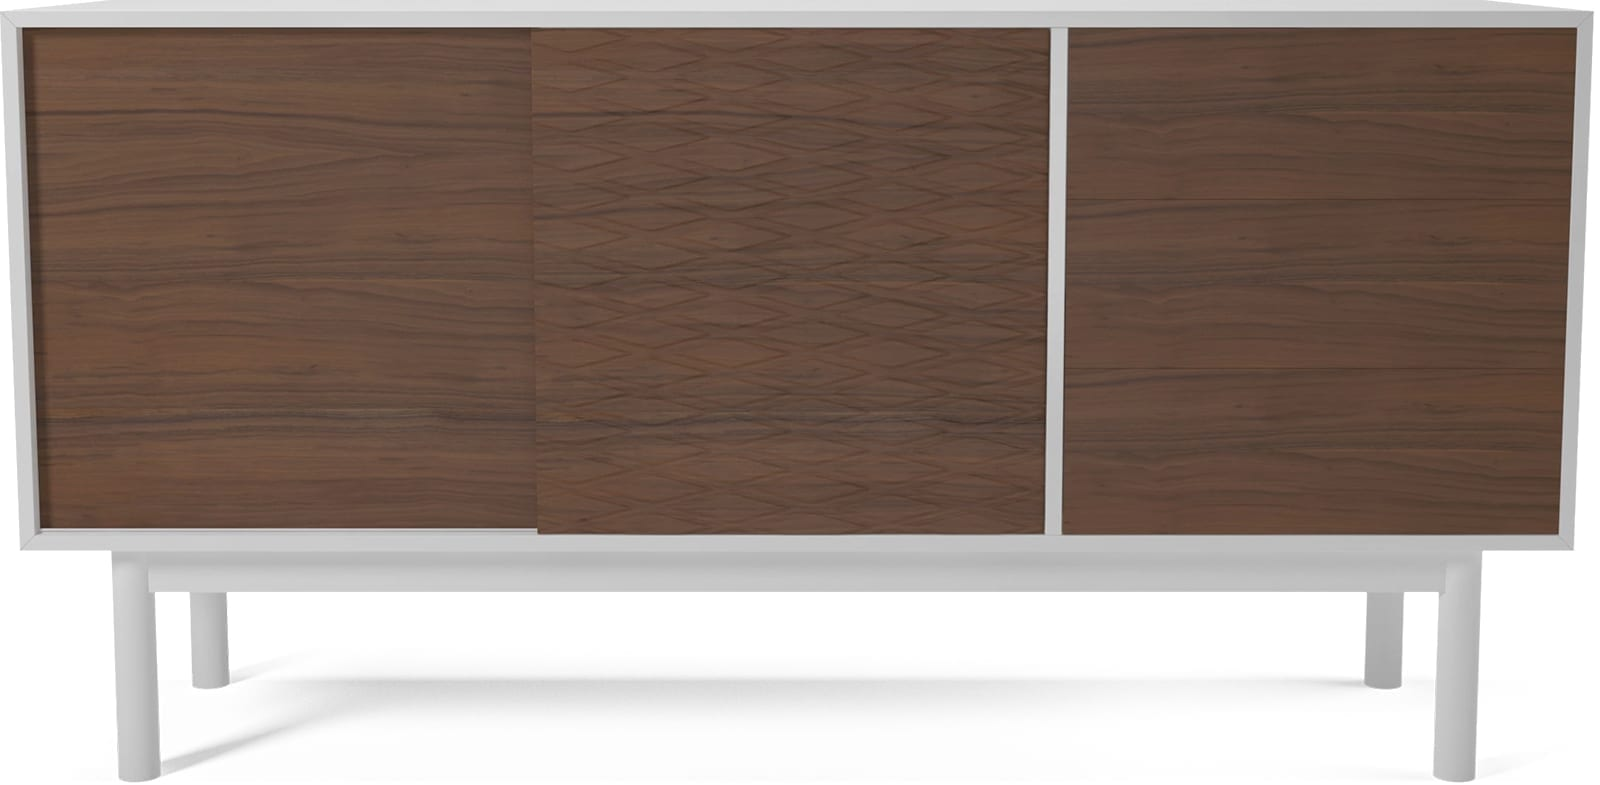 Case Sideboard Mdf Whiteoiled Walnutwooden Legs White